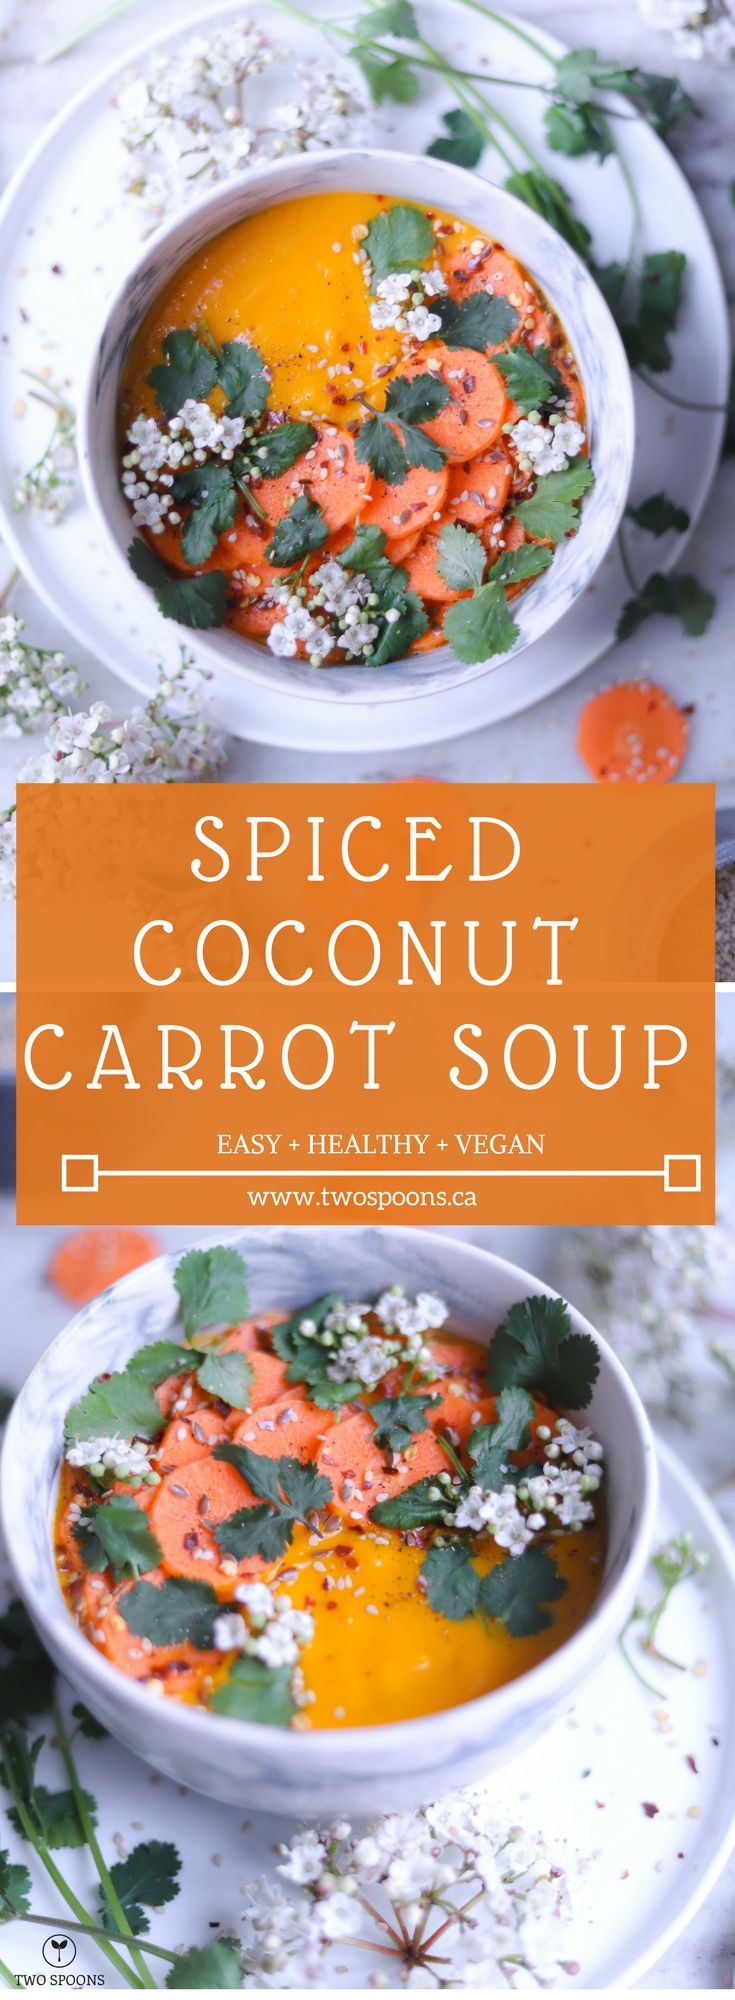 SPICED COCONUT CARROT SOUP | Easy, Healthy, Vegan, Gluten-Free | TWO SPOONS